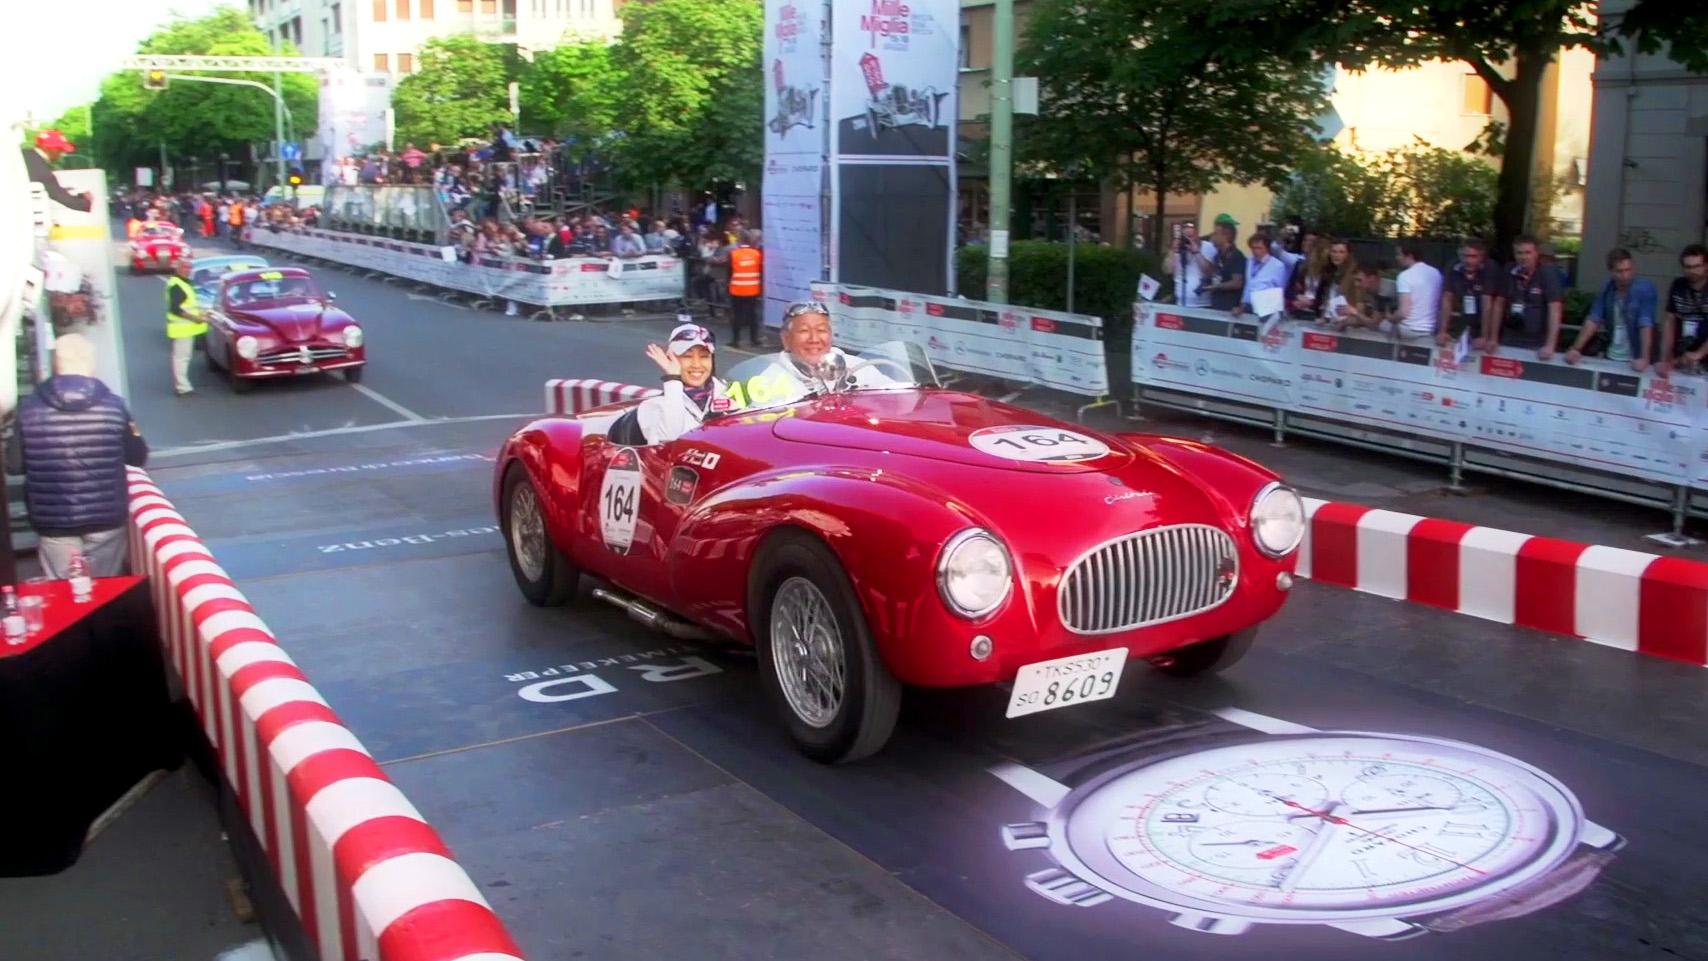 Video: Mille Miglia 2014: A front-row seat